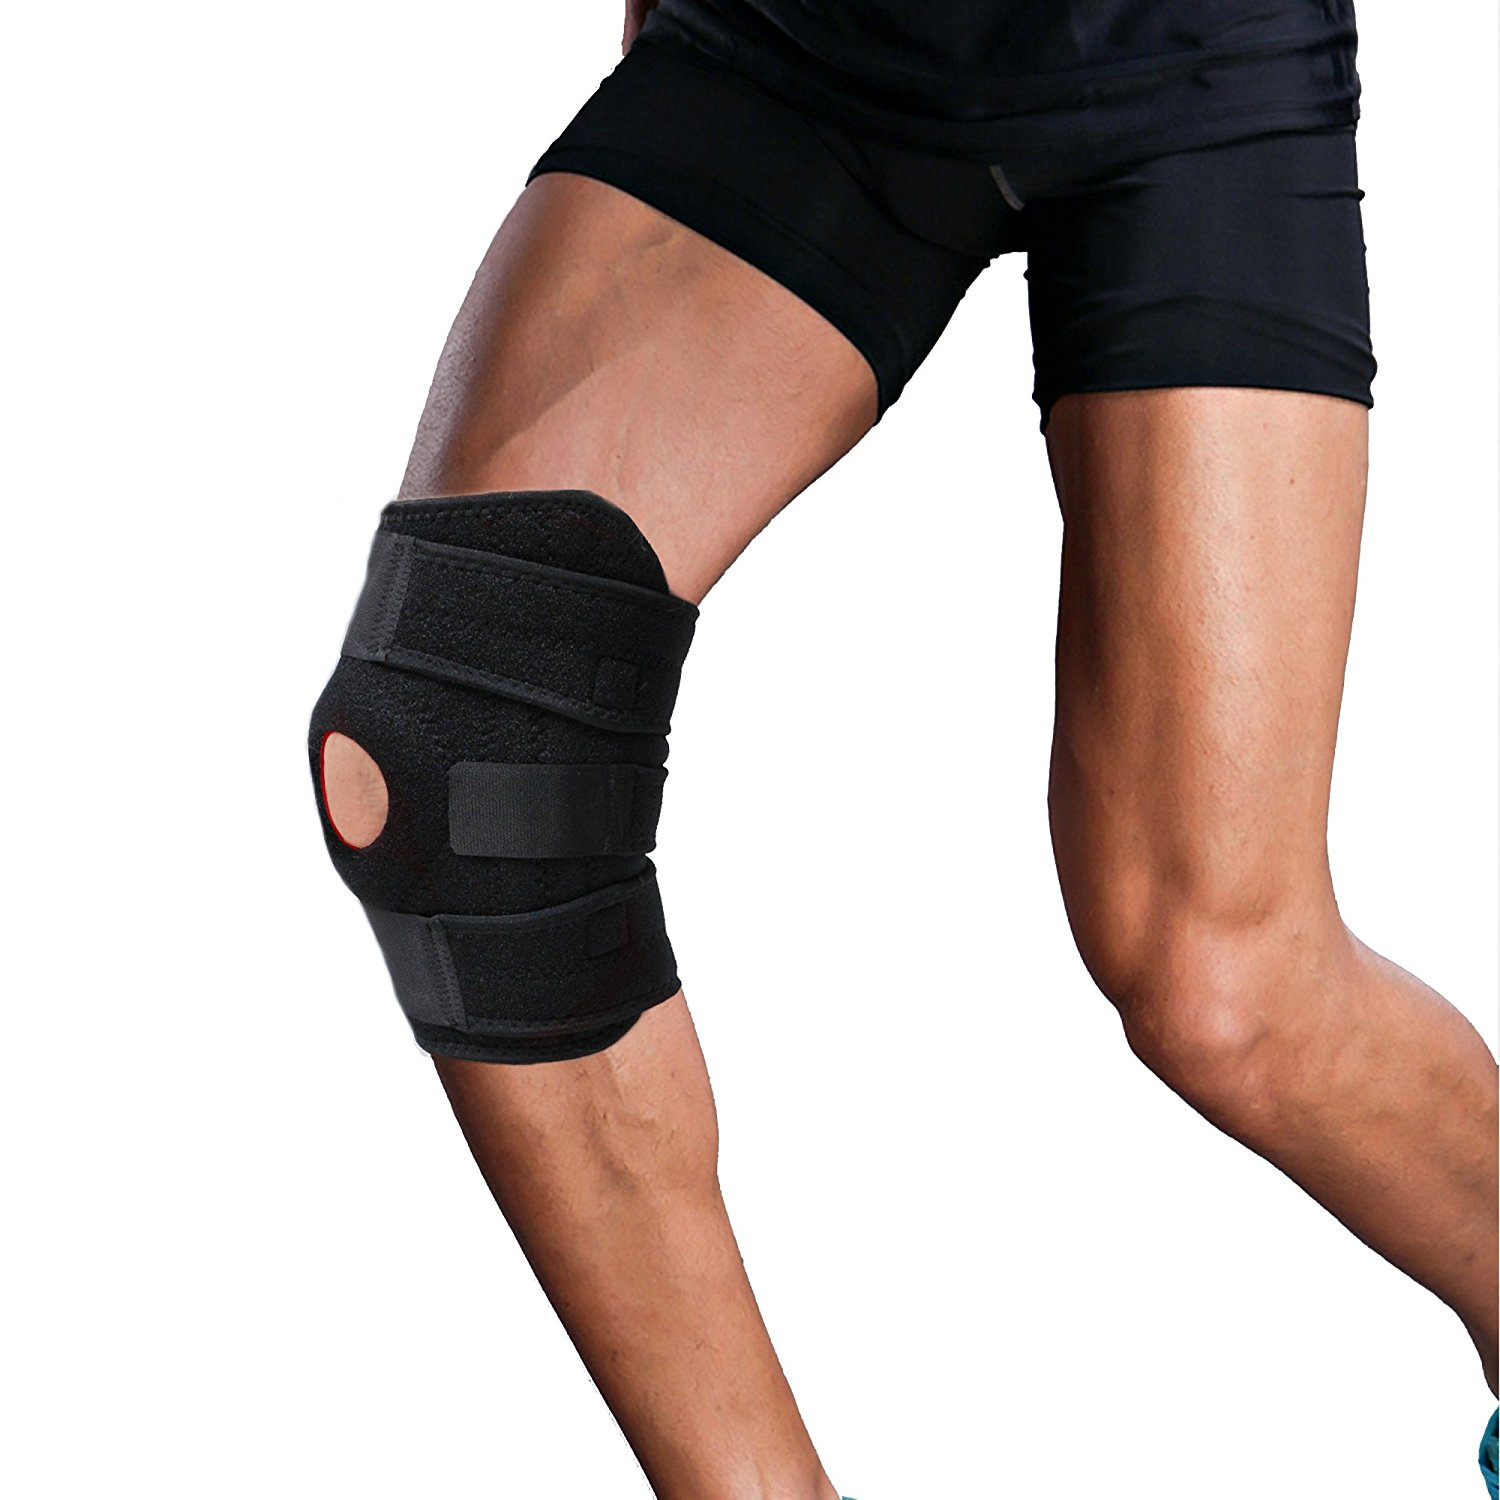 09c11f1b8a Get Quotations · Knee Brace Support Protector,Compressions Open-Patella  Stabilizer Breathable Knee Wraps Pads with Adjustable